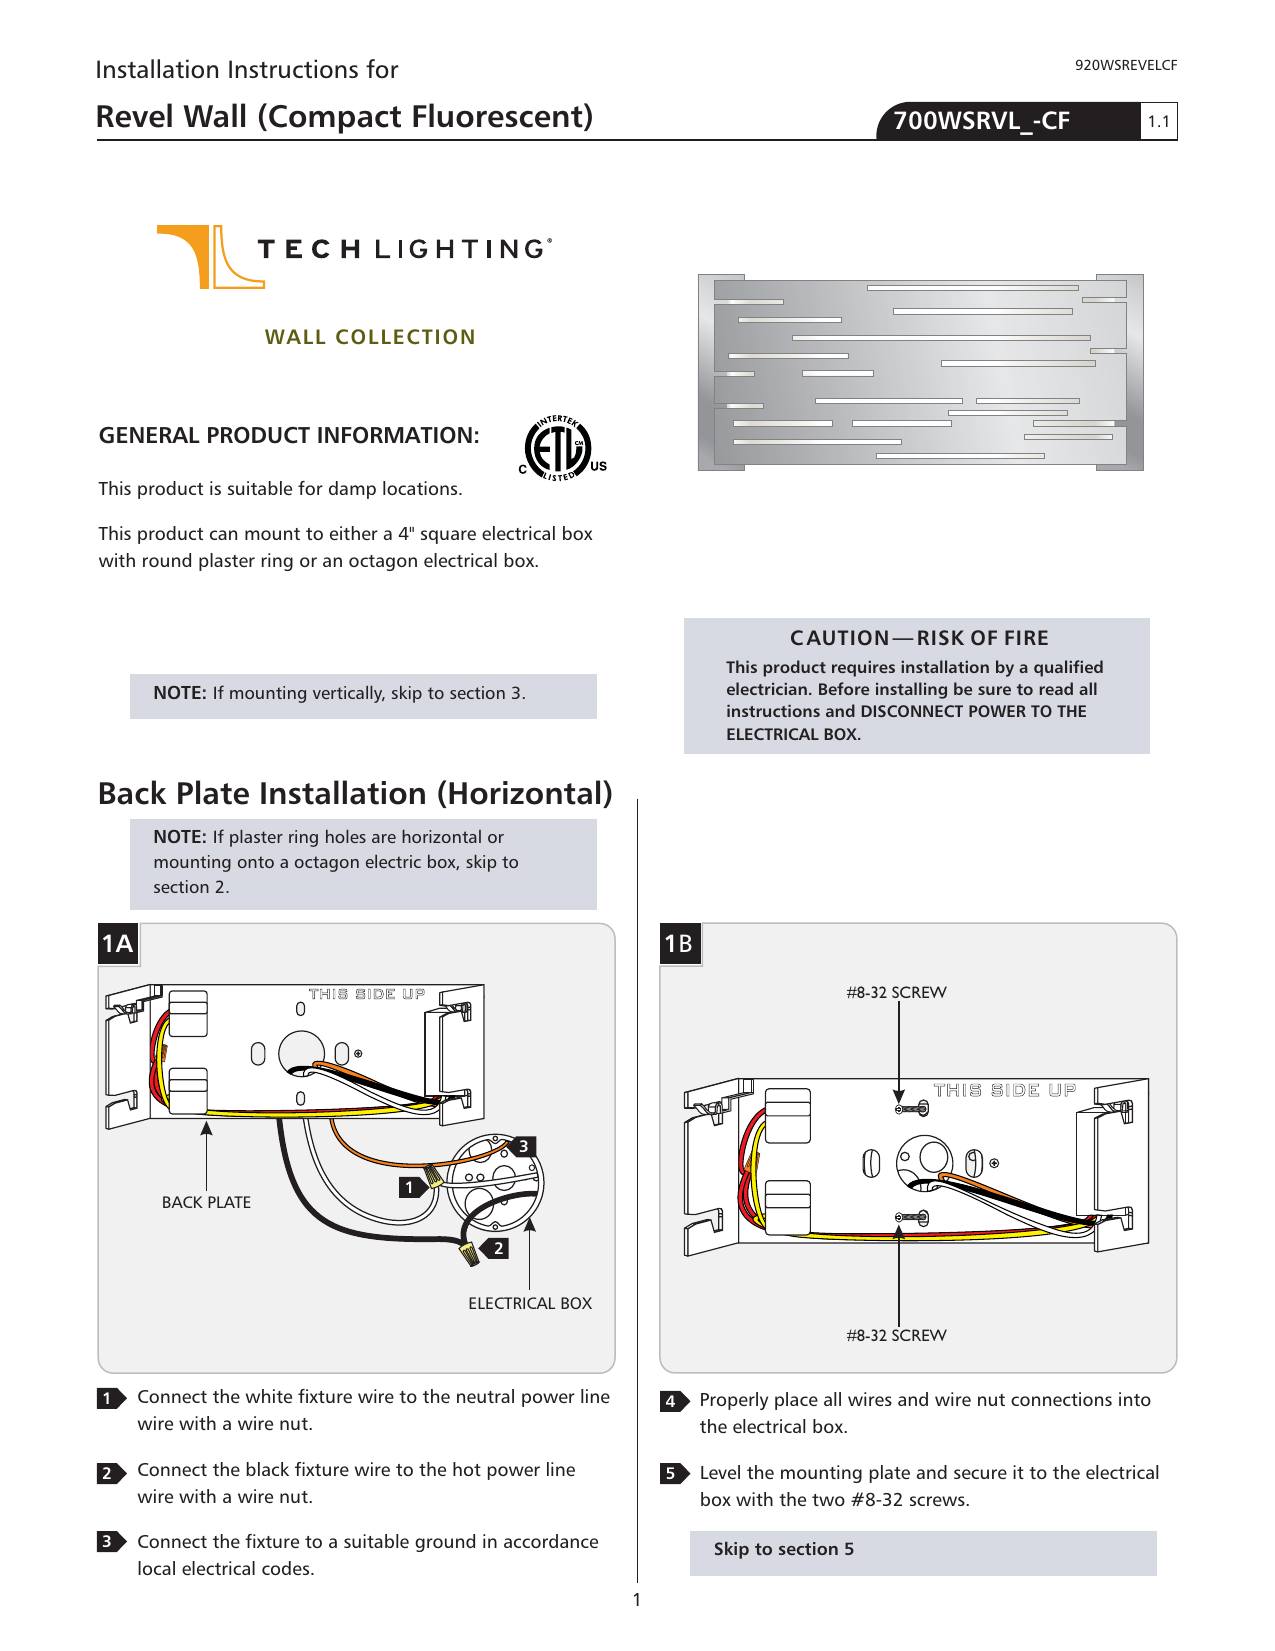 Back Plate Installation Horizontal Revel Wall Compact Fluorescent Wire Nut Diagram